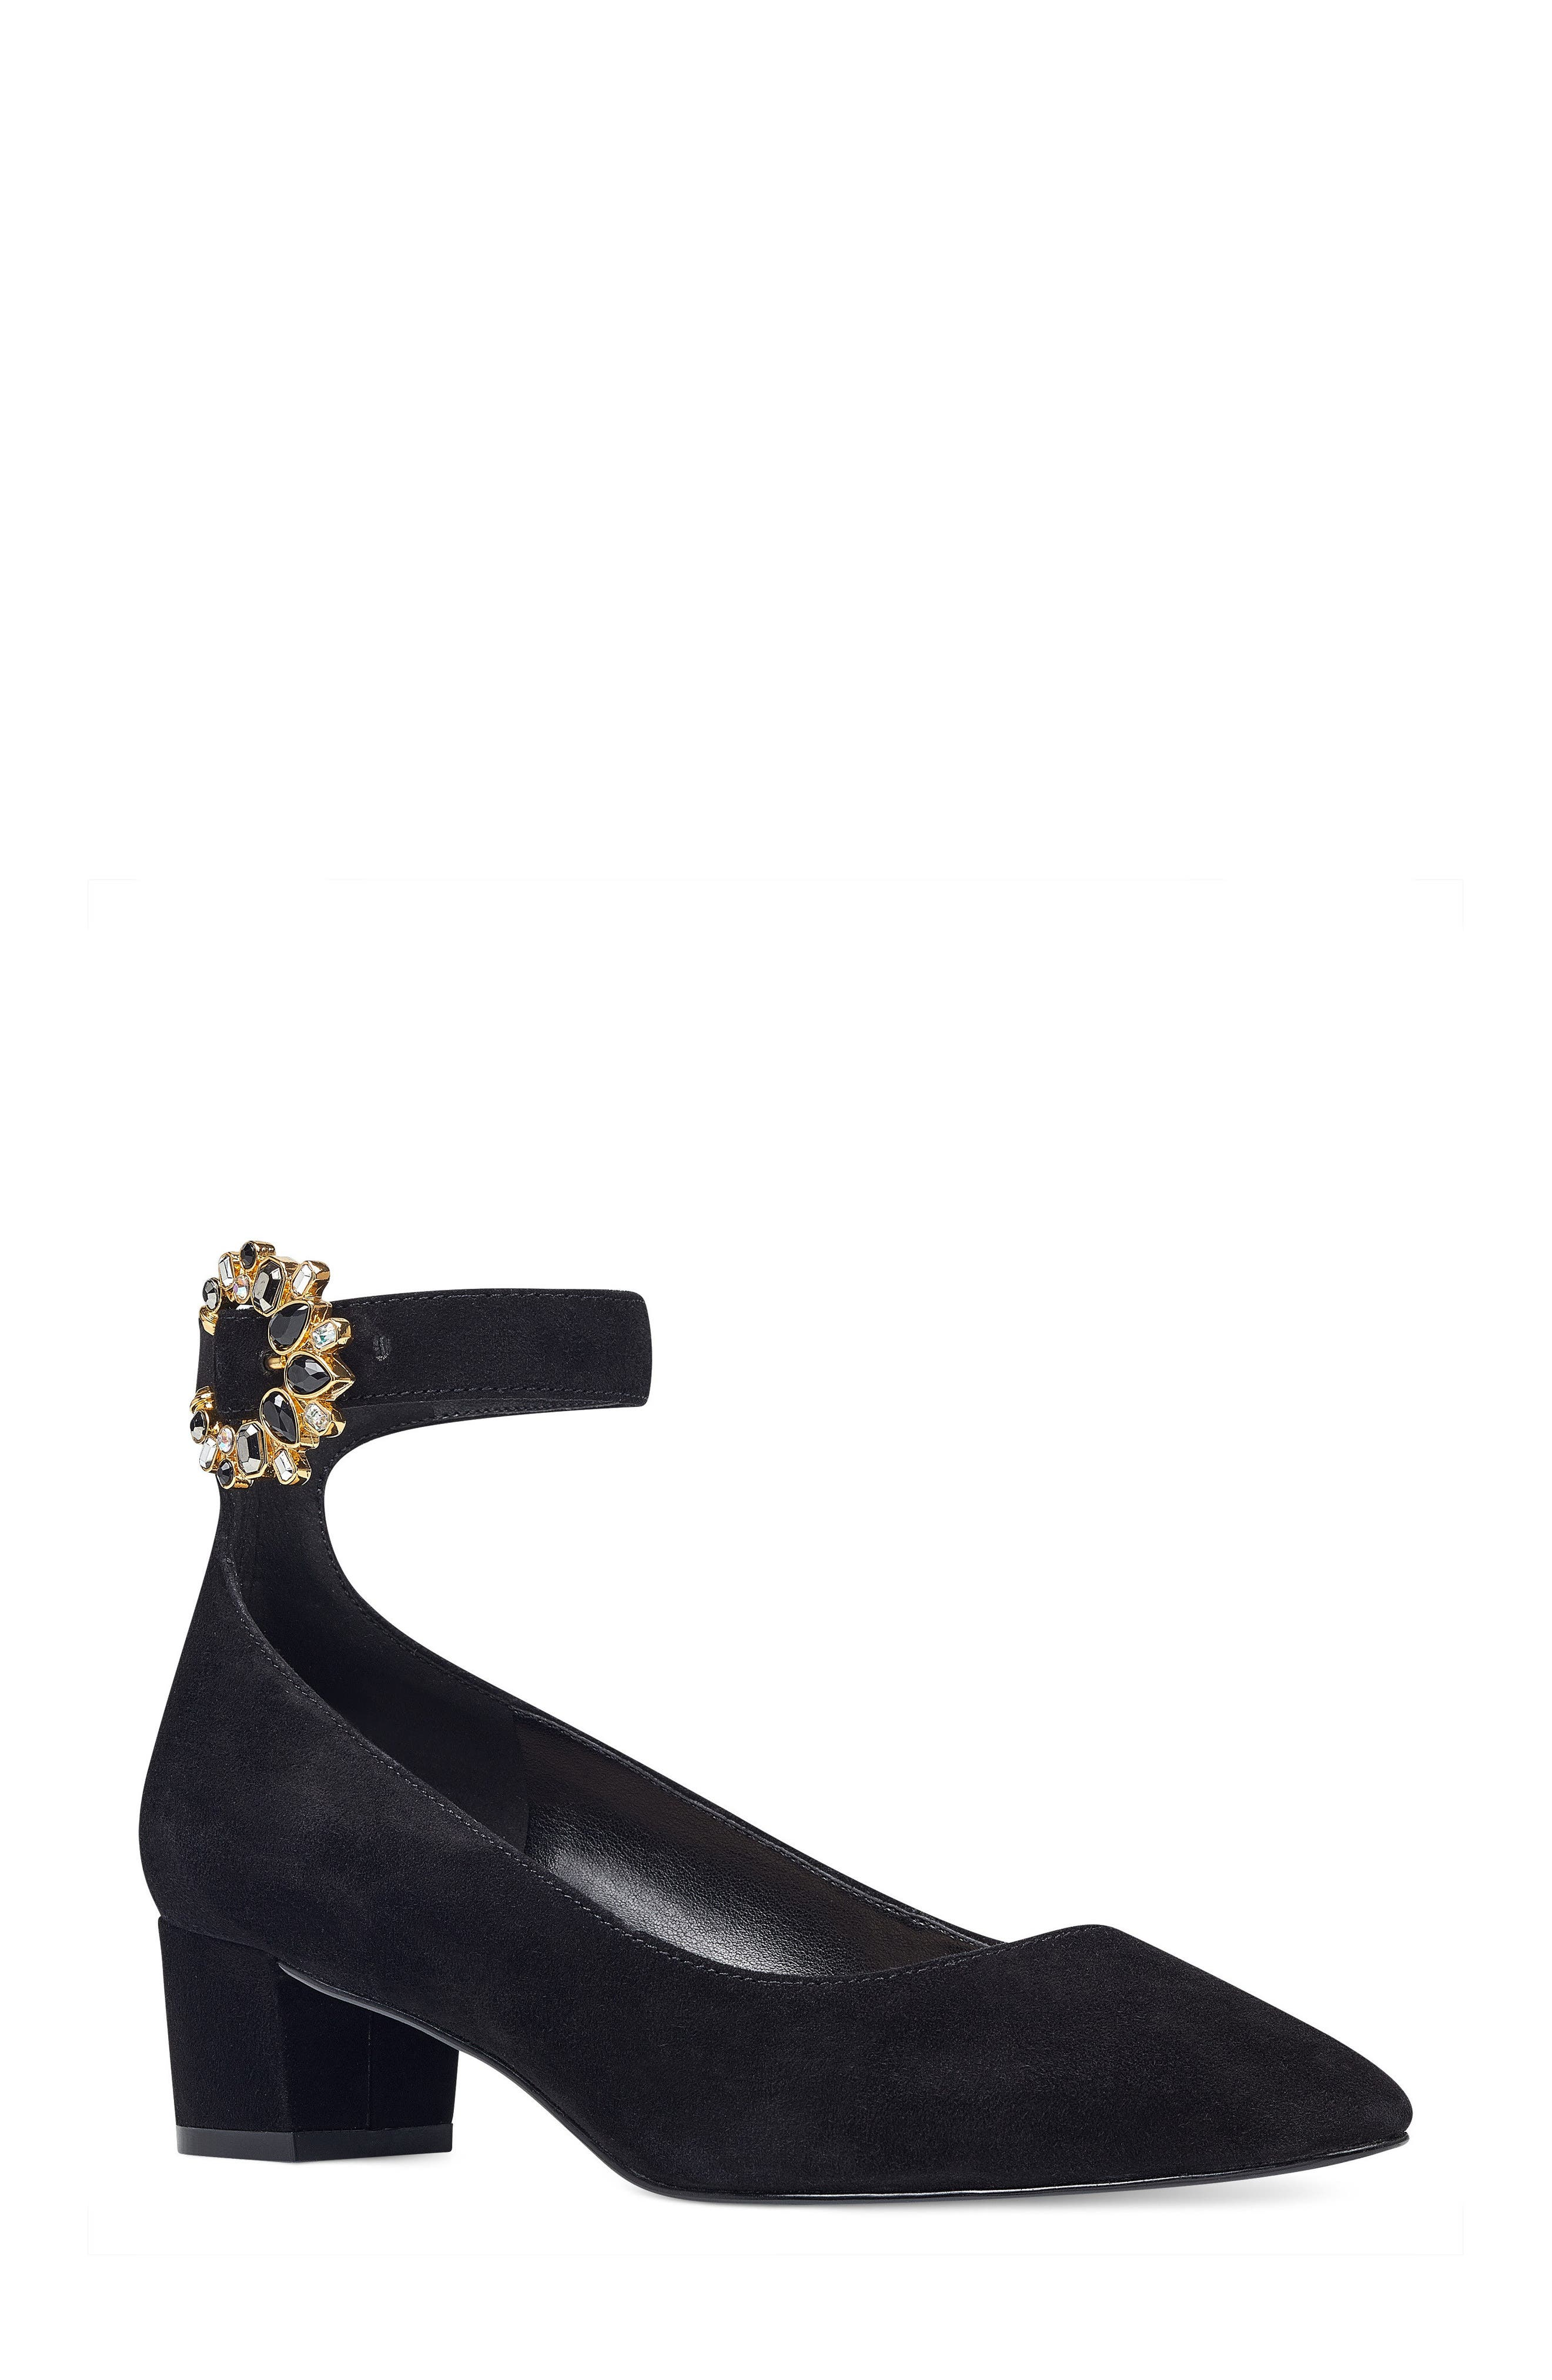 Bartly Ankle Strap Pump,                             Main thumbnail 1, color,                             001